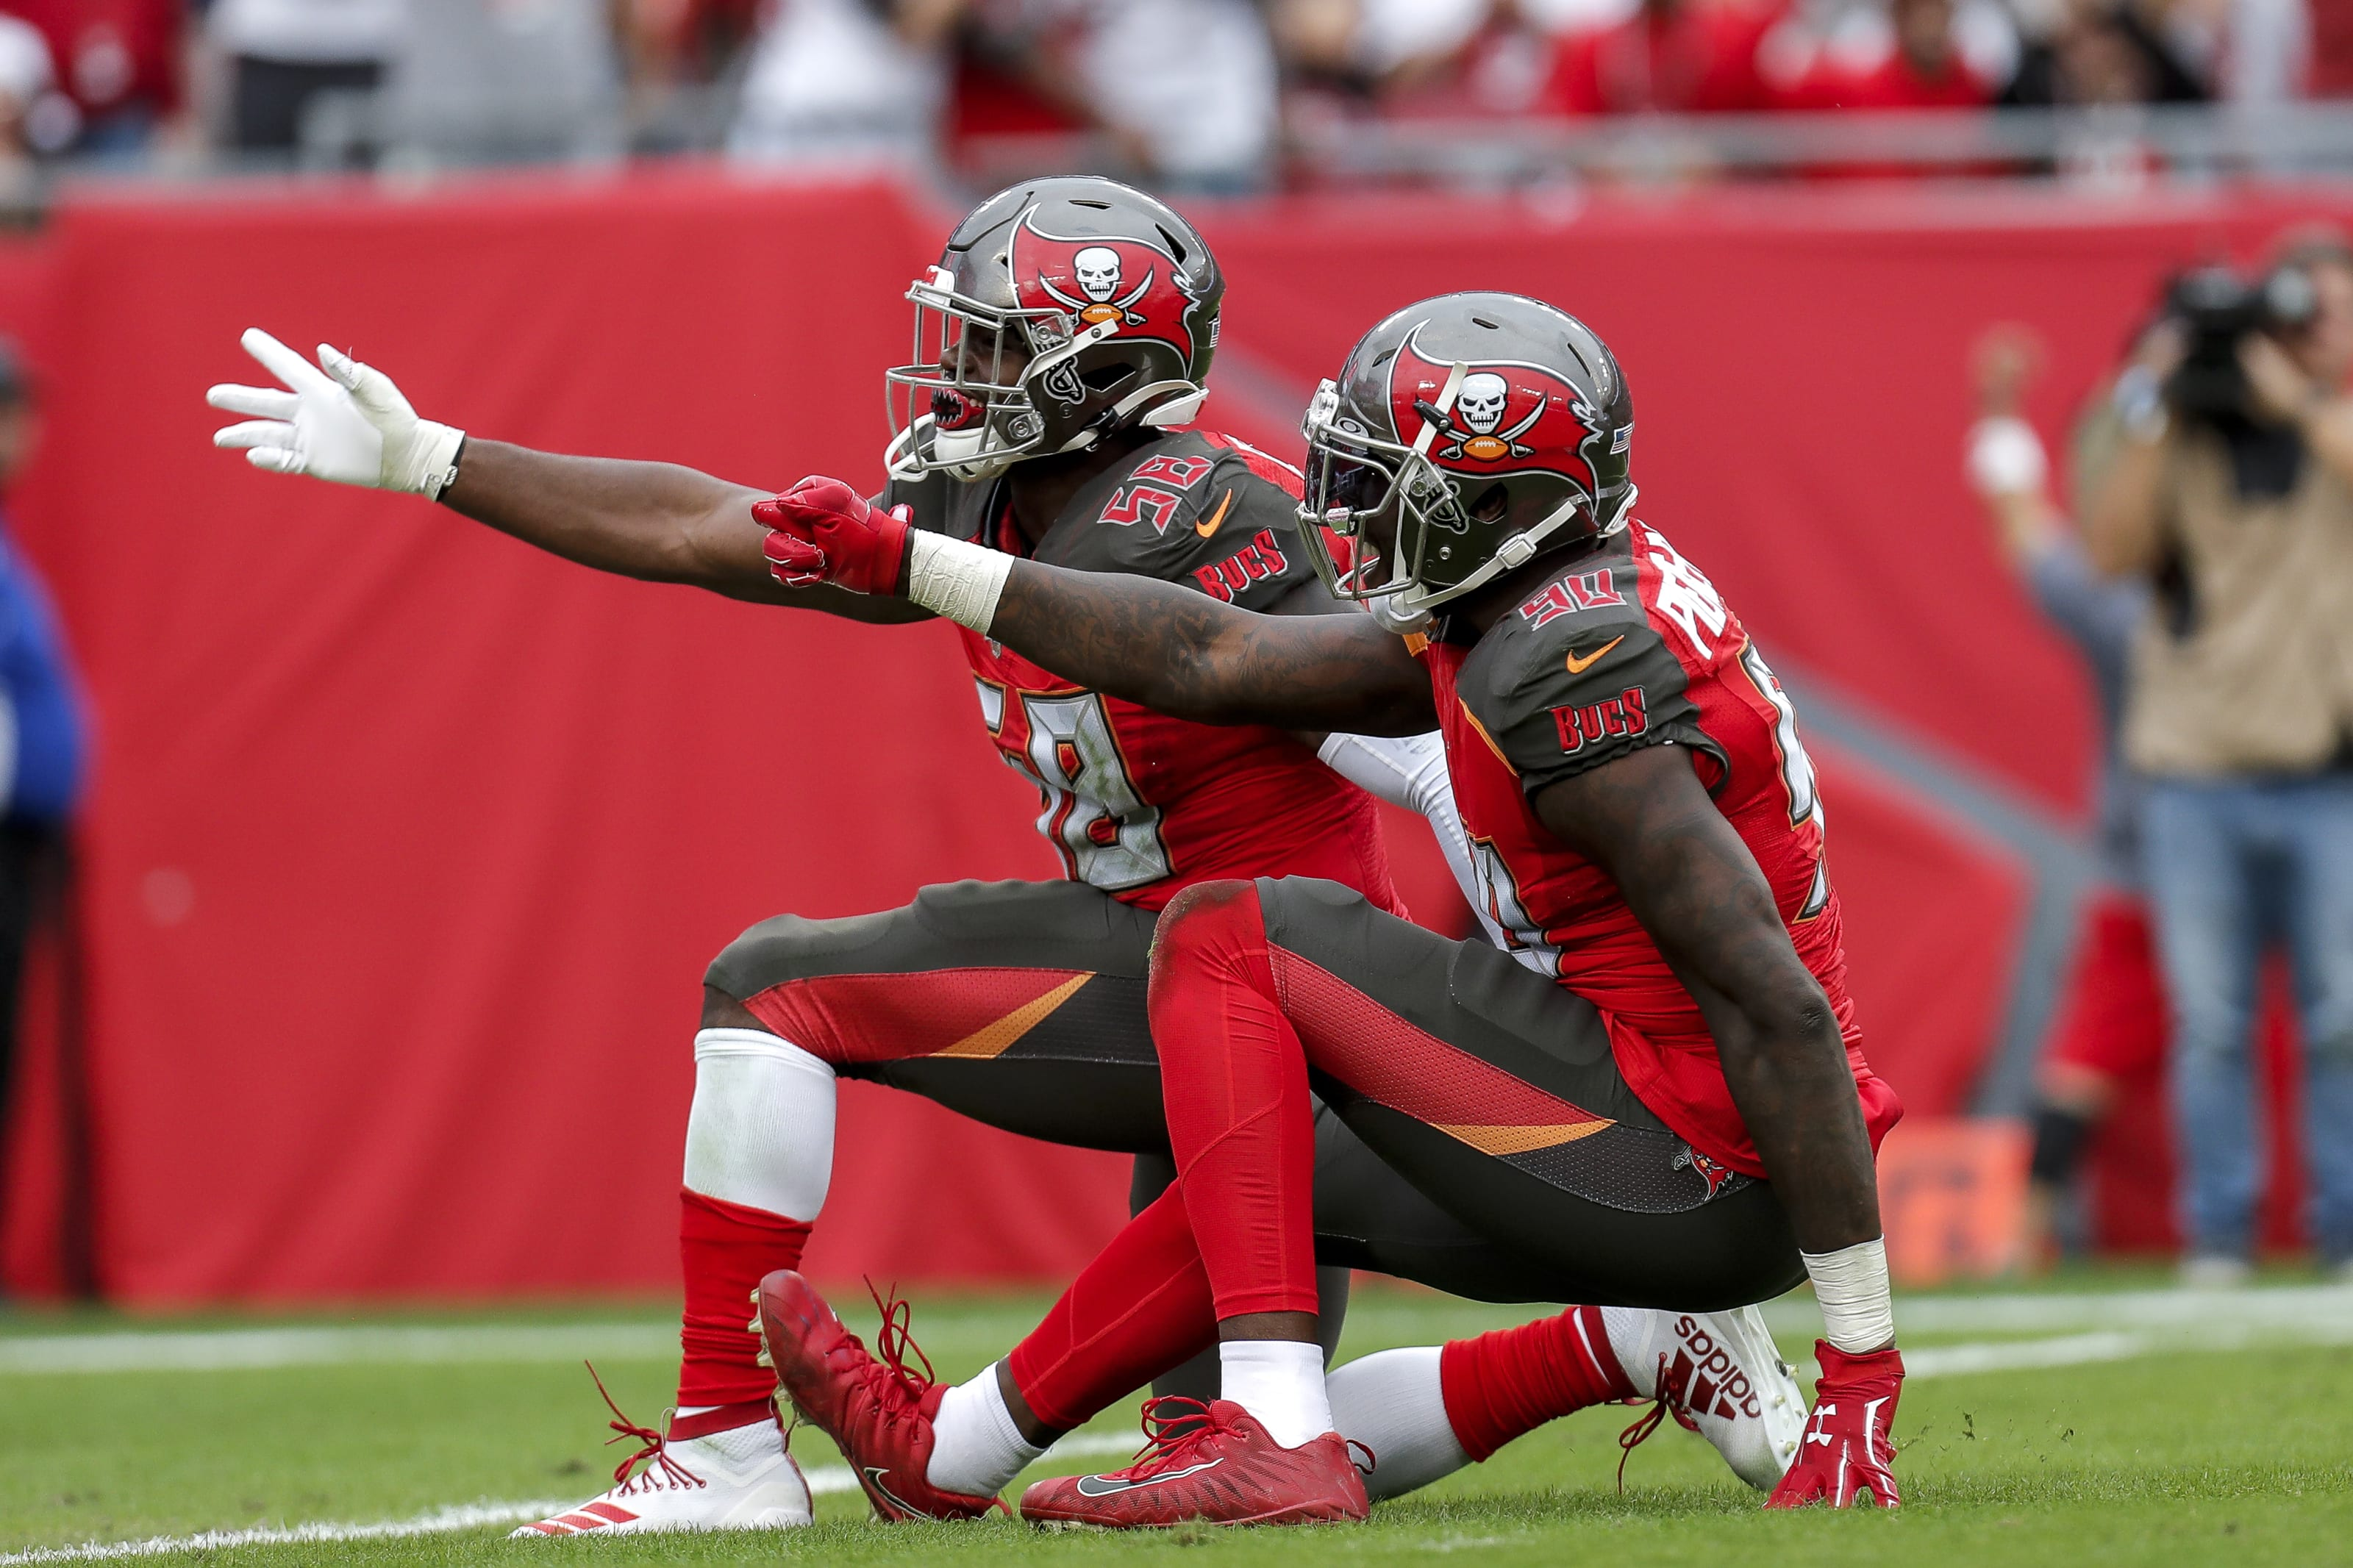 Jason Pierre-Paul, Shaquil Barrett, Tampa Bay Buccaneers (Photo by Don Juan Moore/Getty Images)